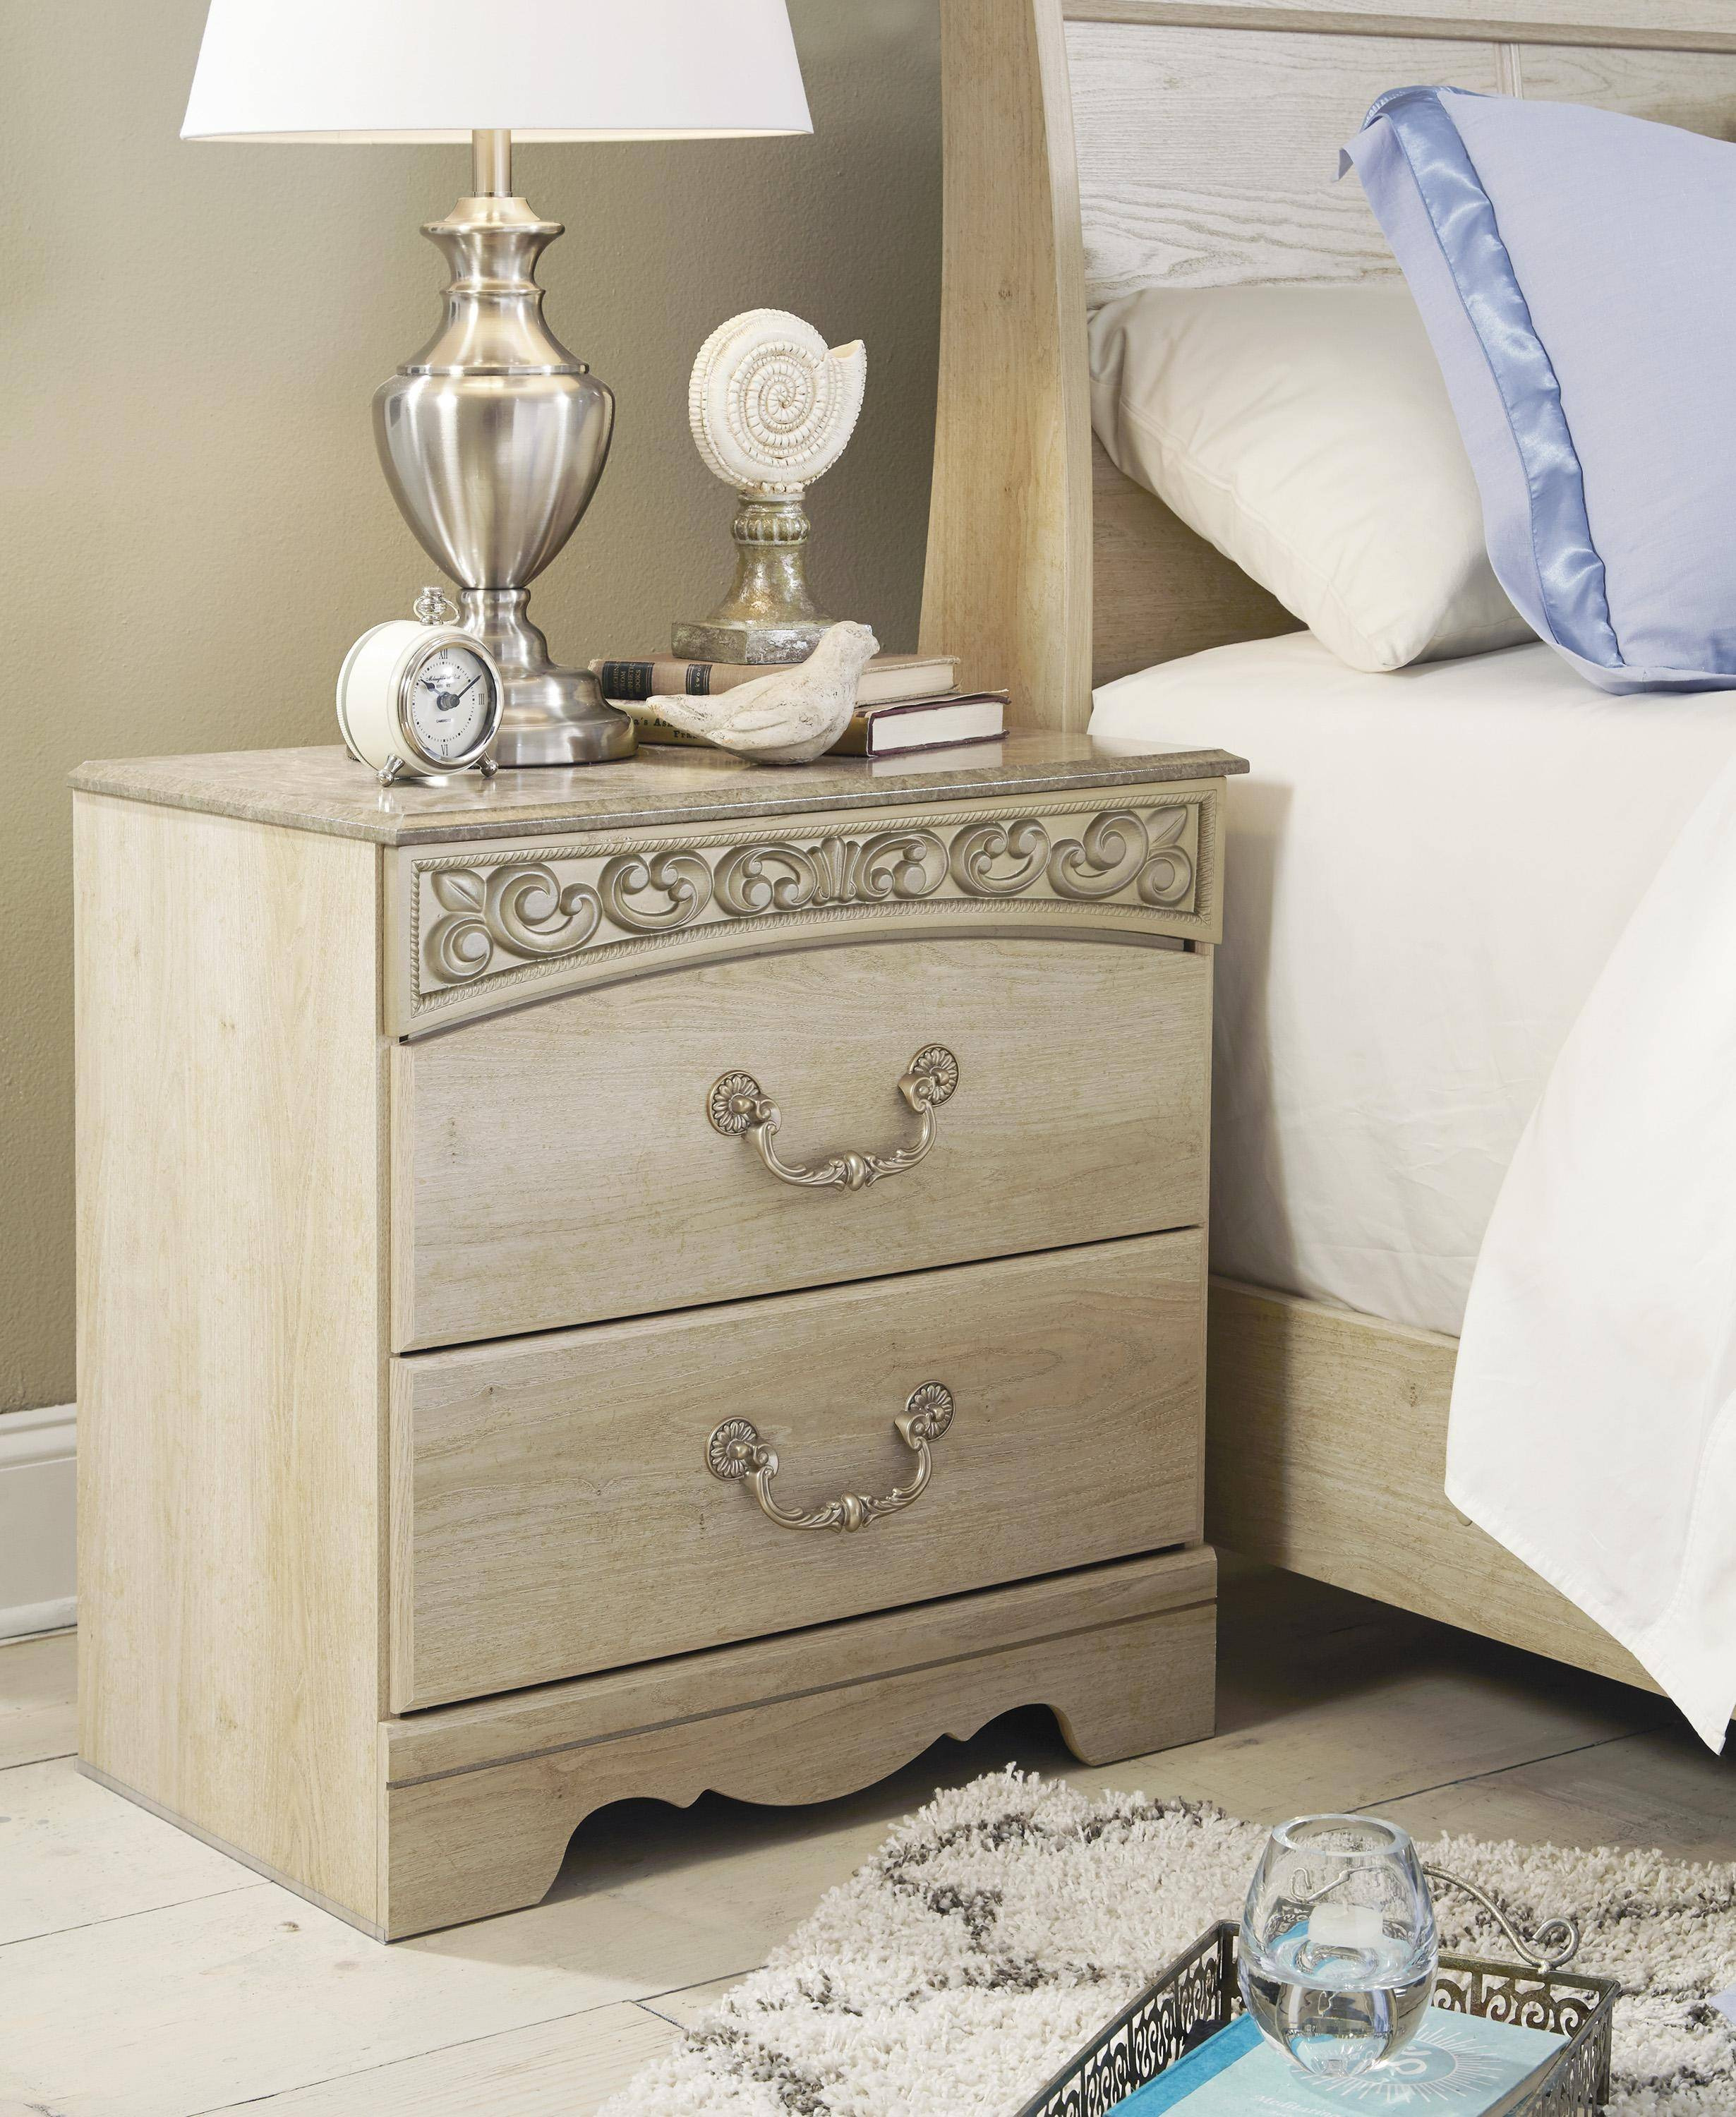 ashley catalina b196 king size poster bedroom set 5pcs in antique white 3172